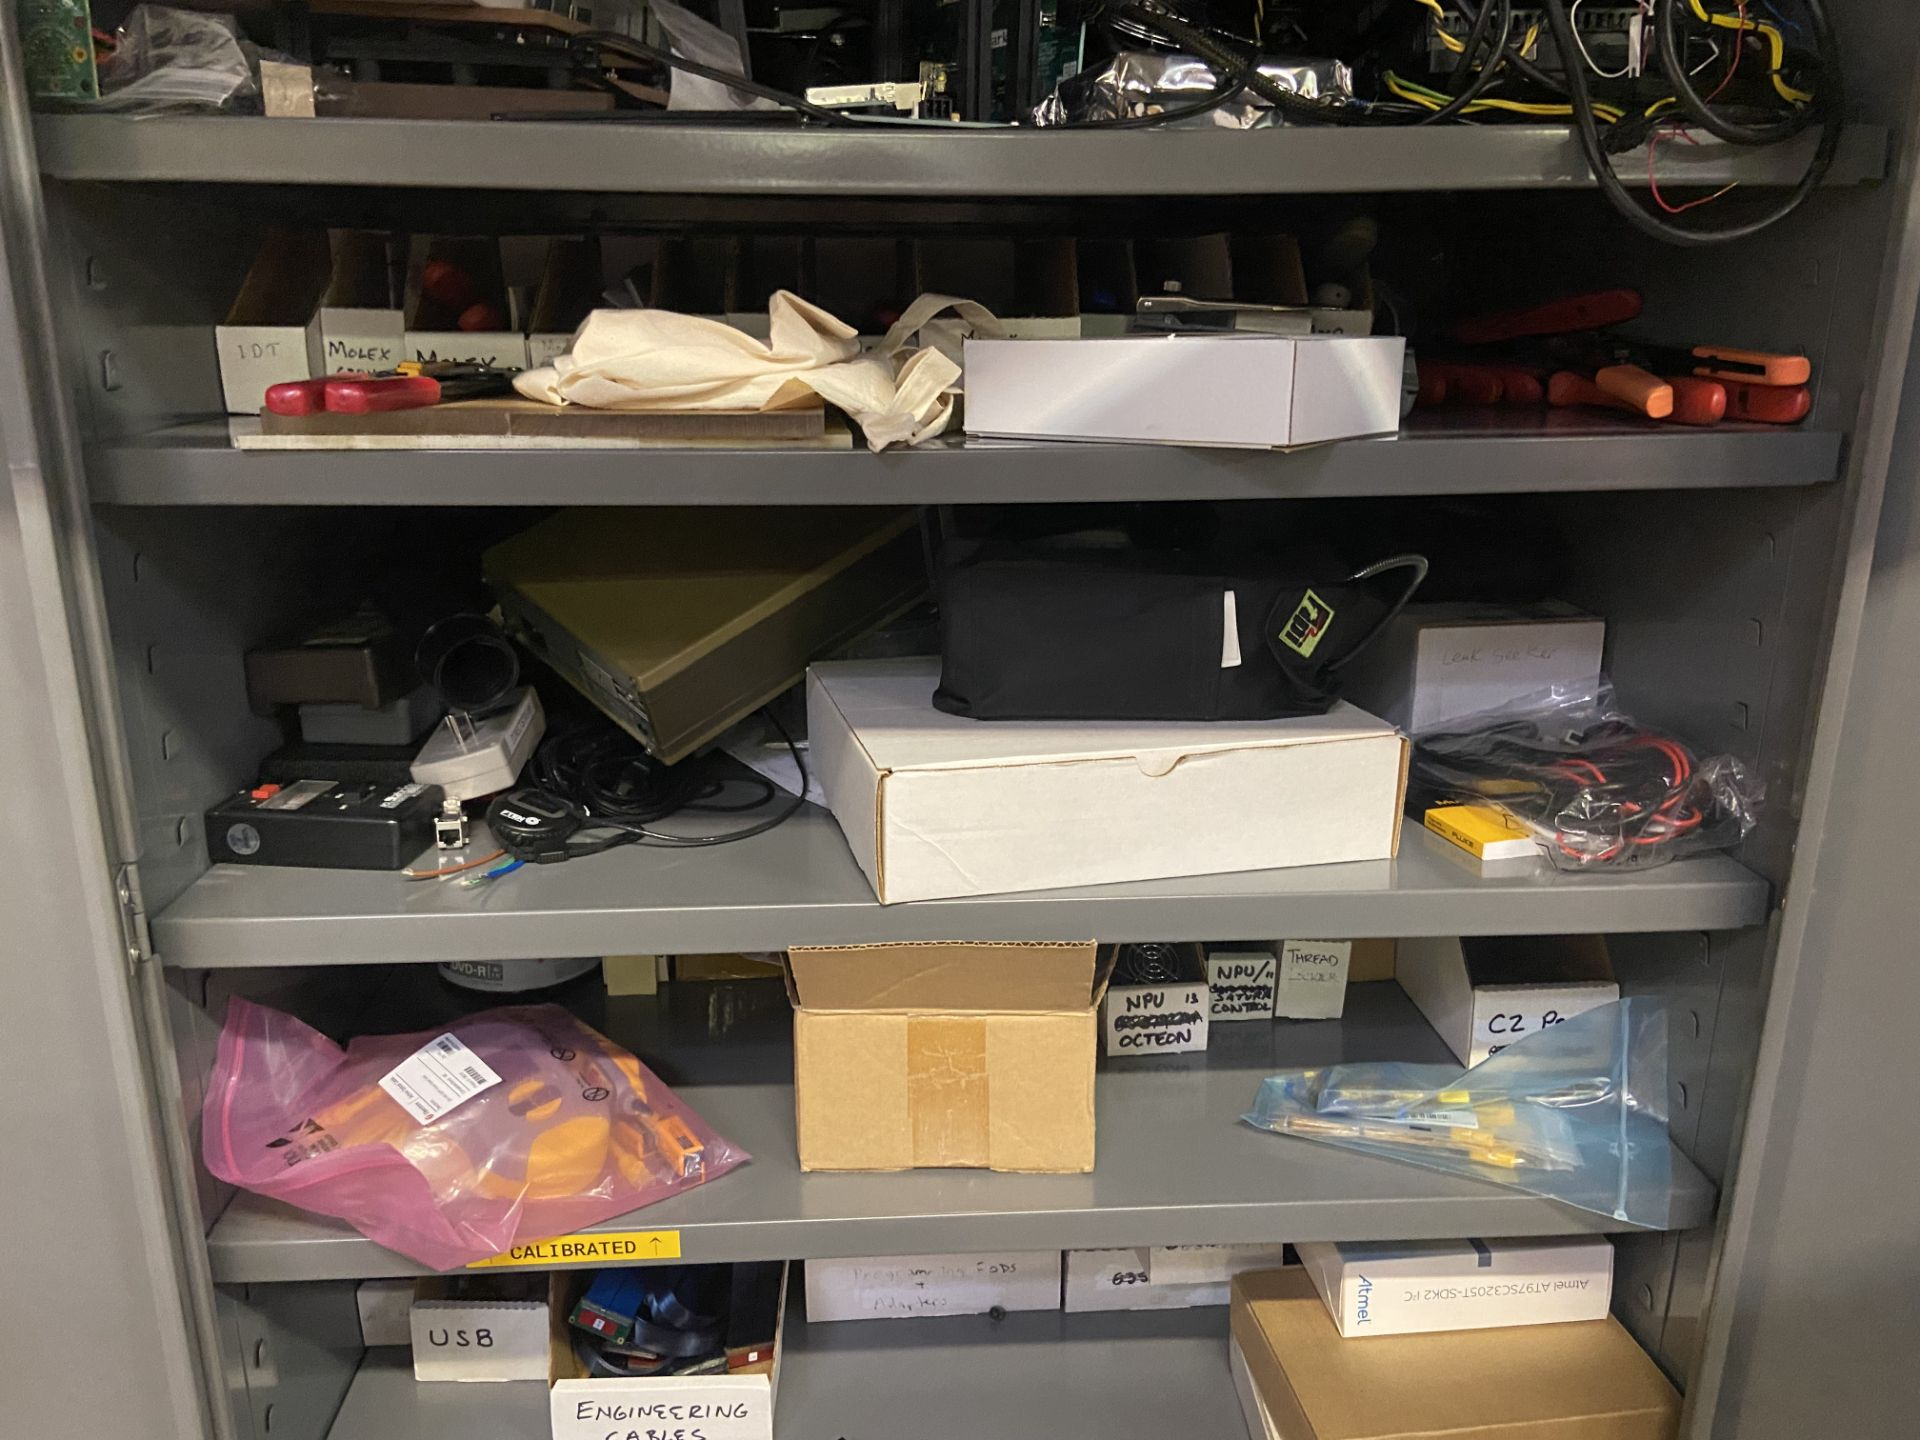 Cabinet and Contents (See Photos), Rigging Fee: $50 - Image 3 of 9